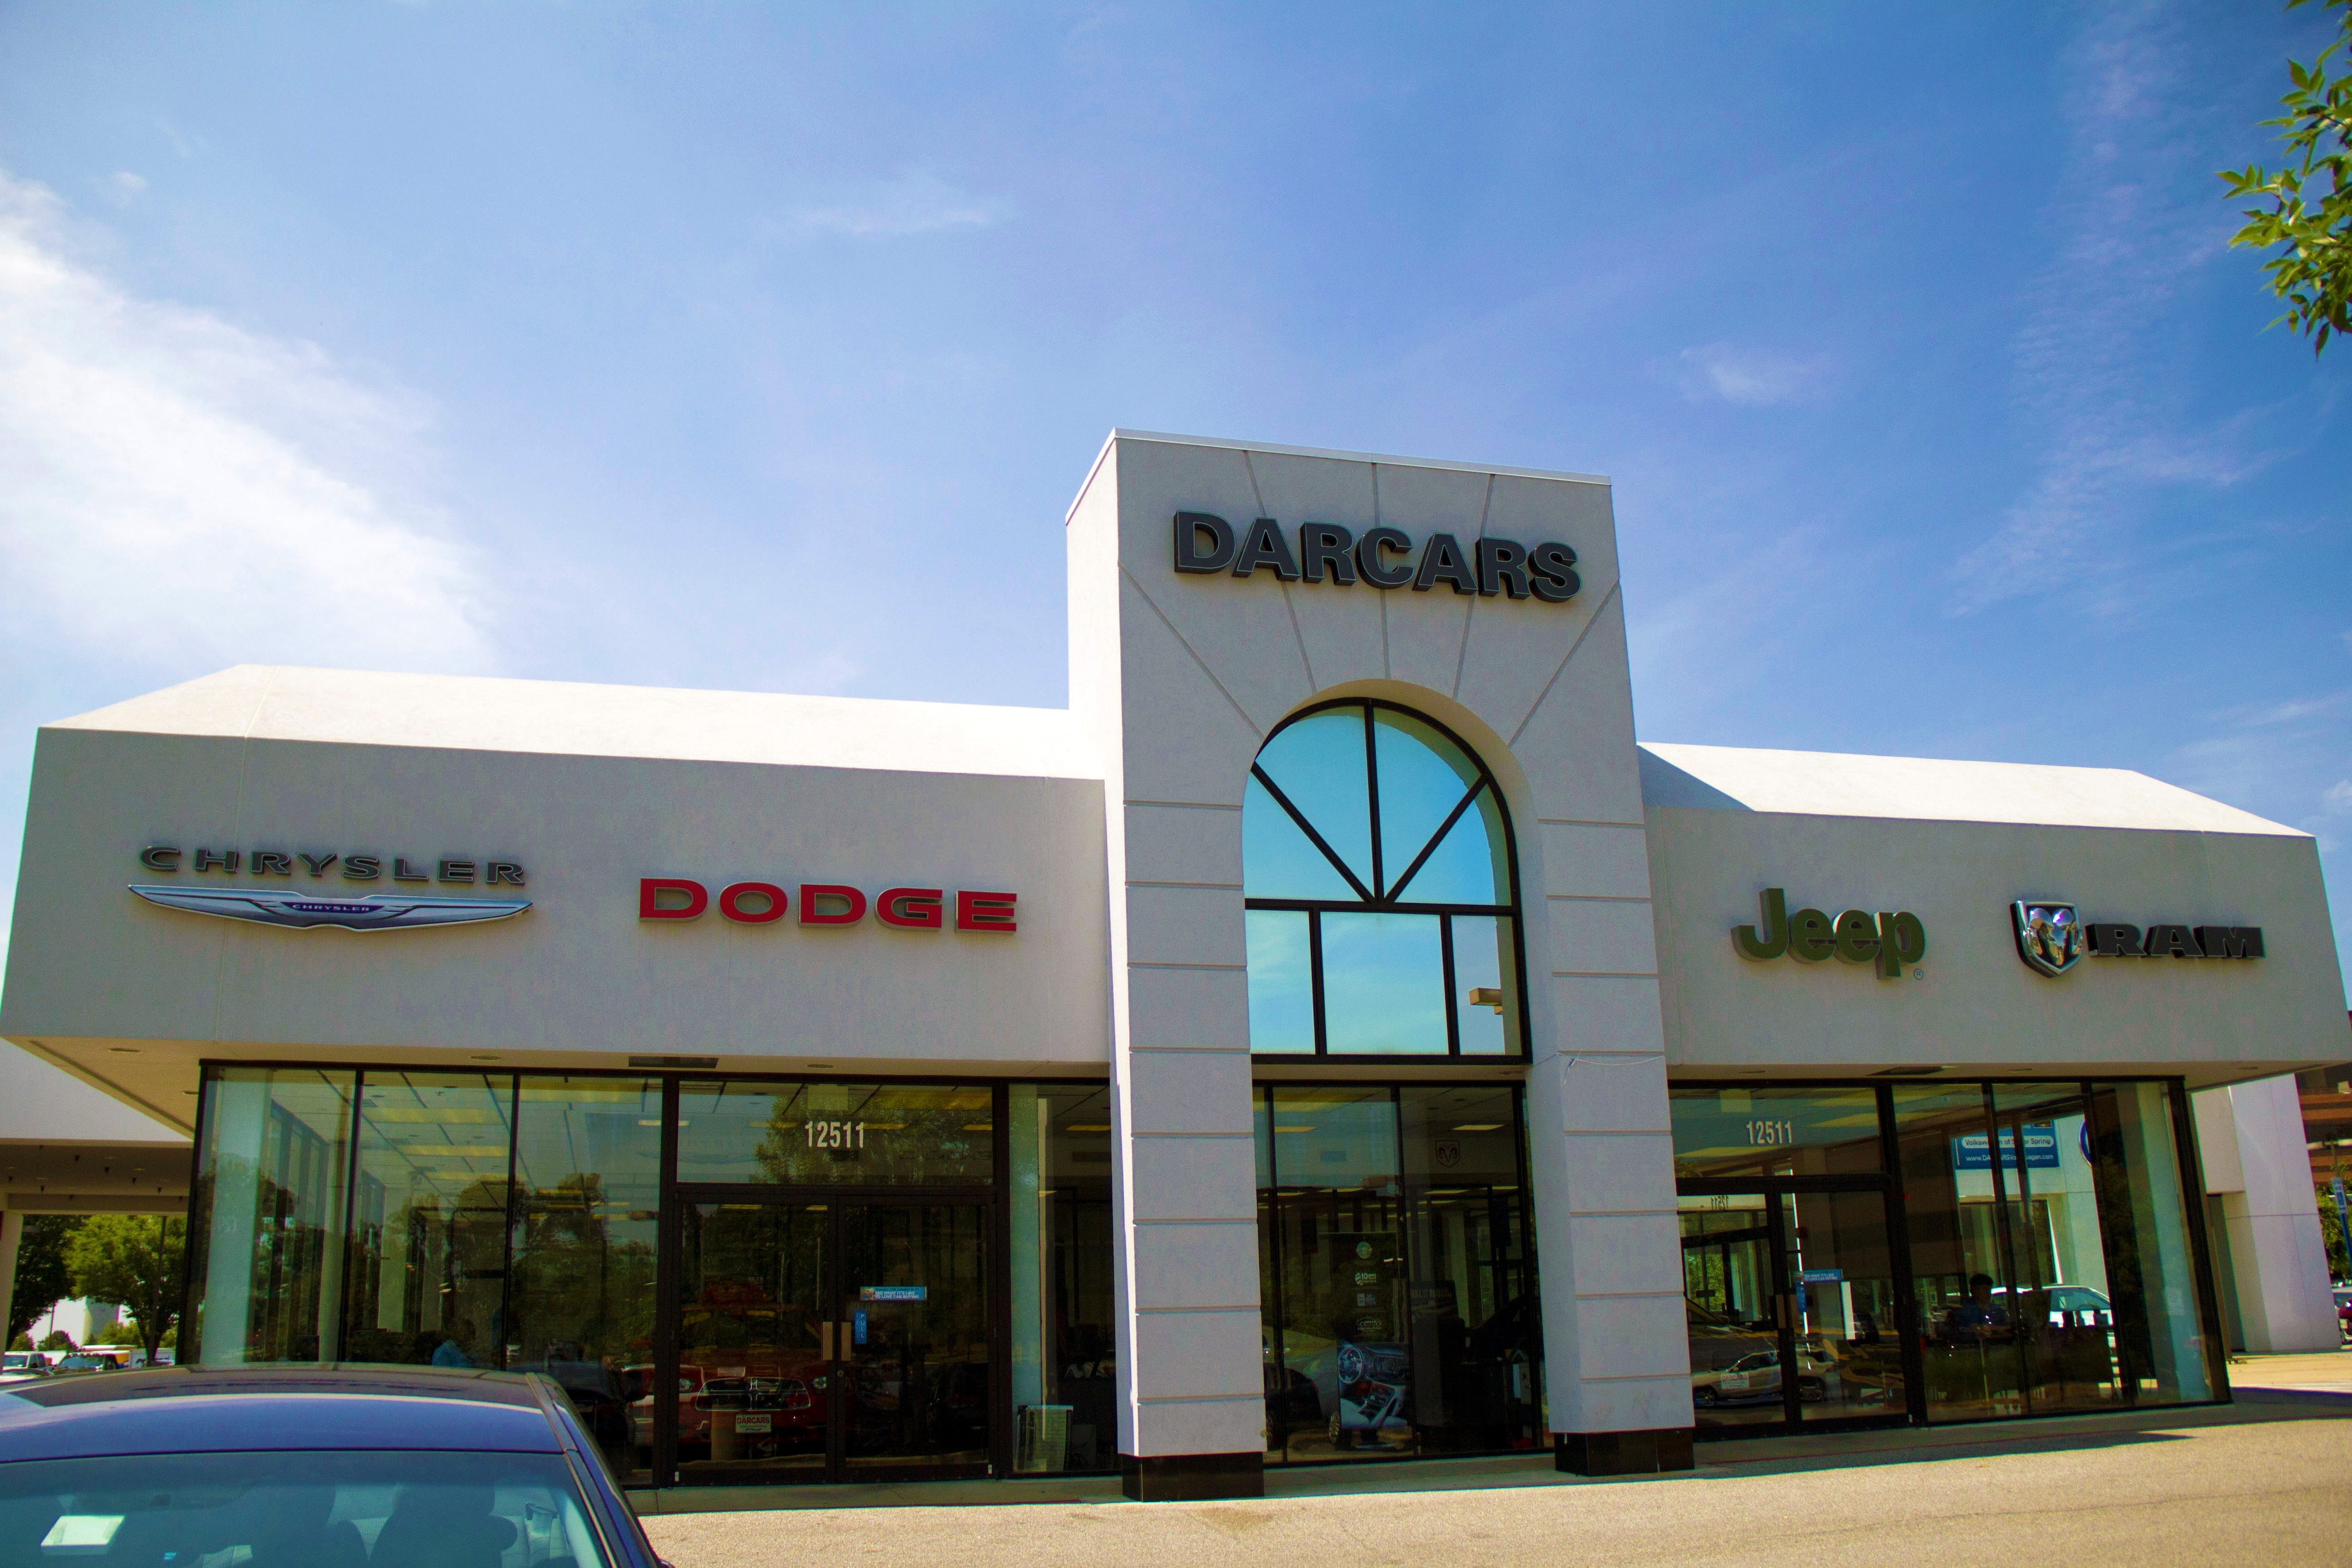 Welcome To DARCARS Chrysler Dodge Jeep Ram Of Silver Spring. Weu0027re Excited  For You To Learn Why First Time Buyers, Students, Young Professionals, ...